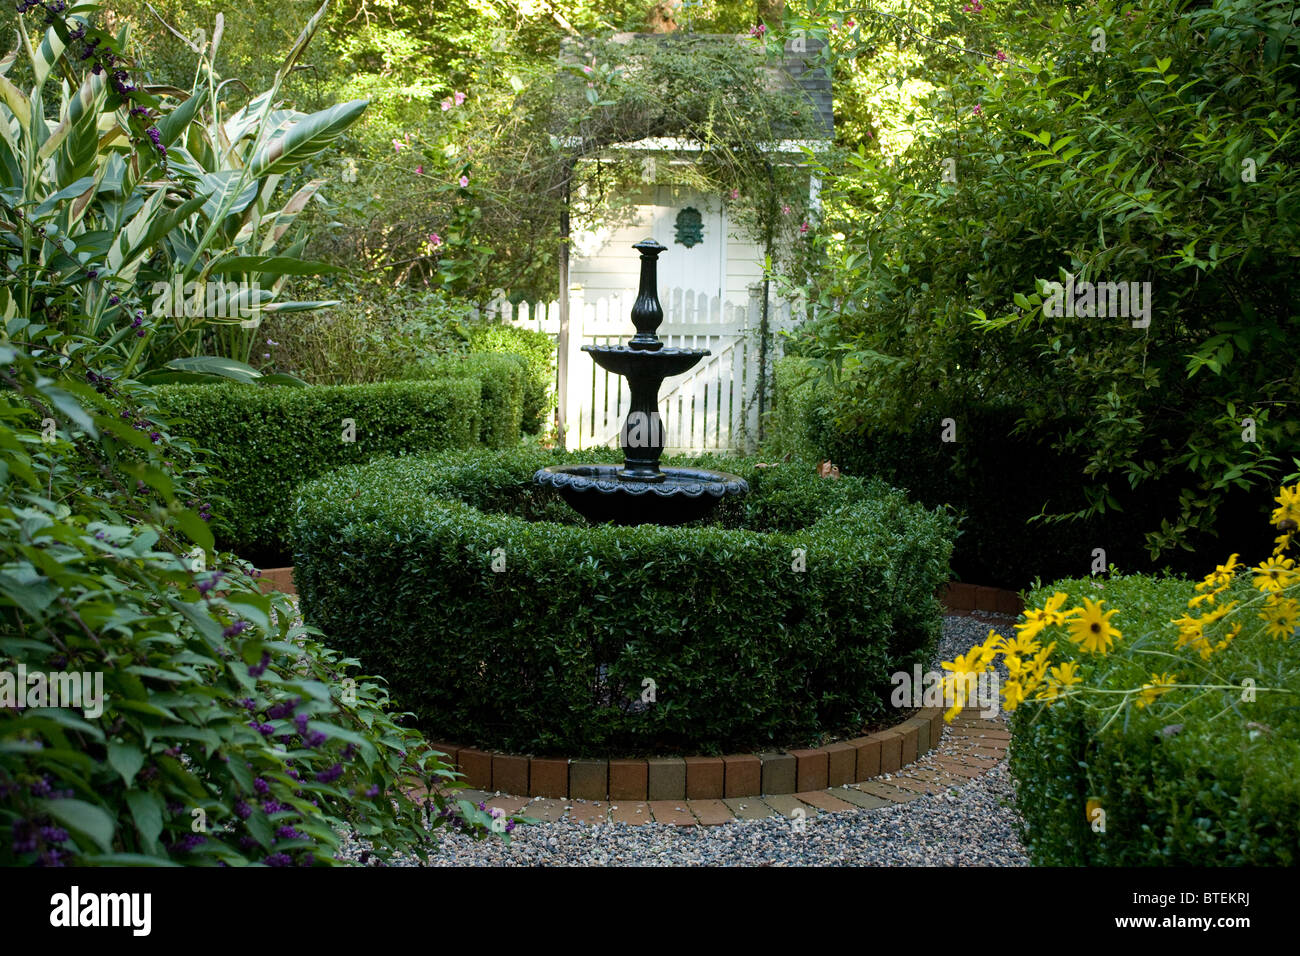 Small Garden Courtyard With A Fountain Water Feature.   Stock Image